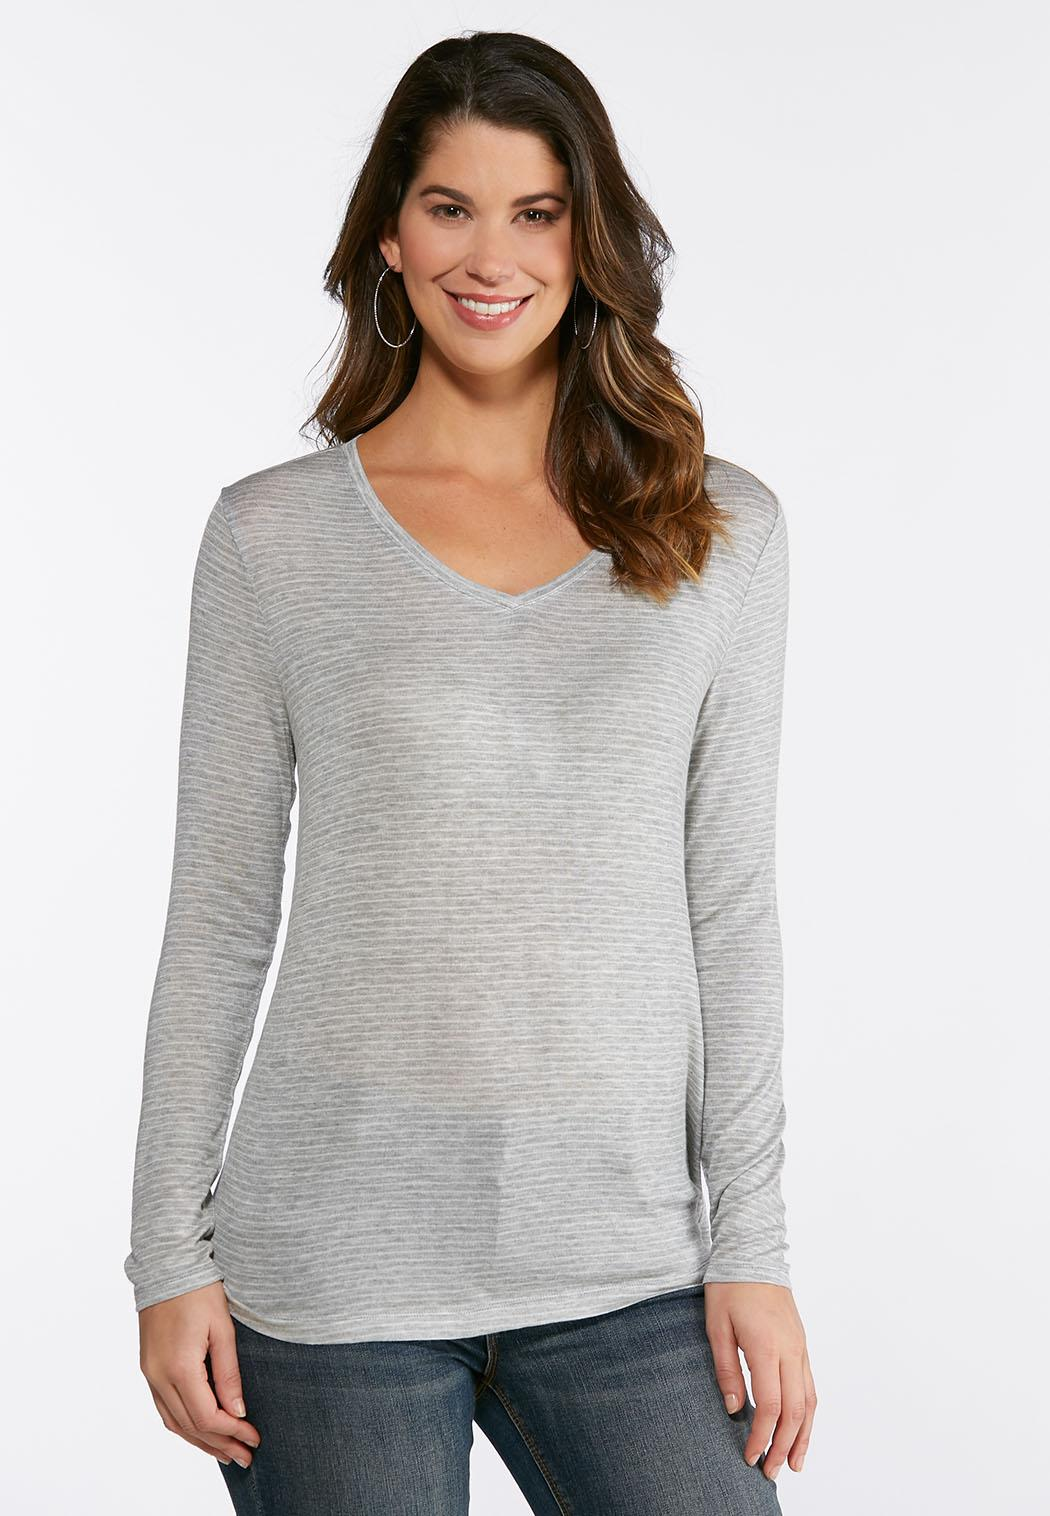 Plus Size Gray Stripe Top Tees & Knit Tops Cato Fashions